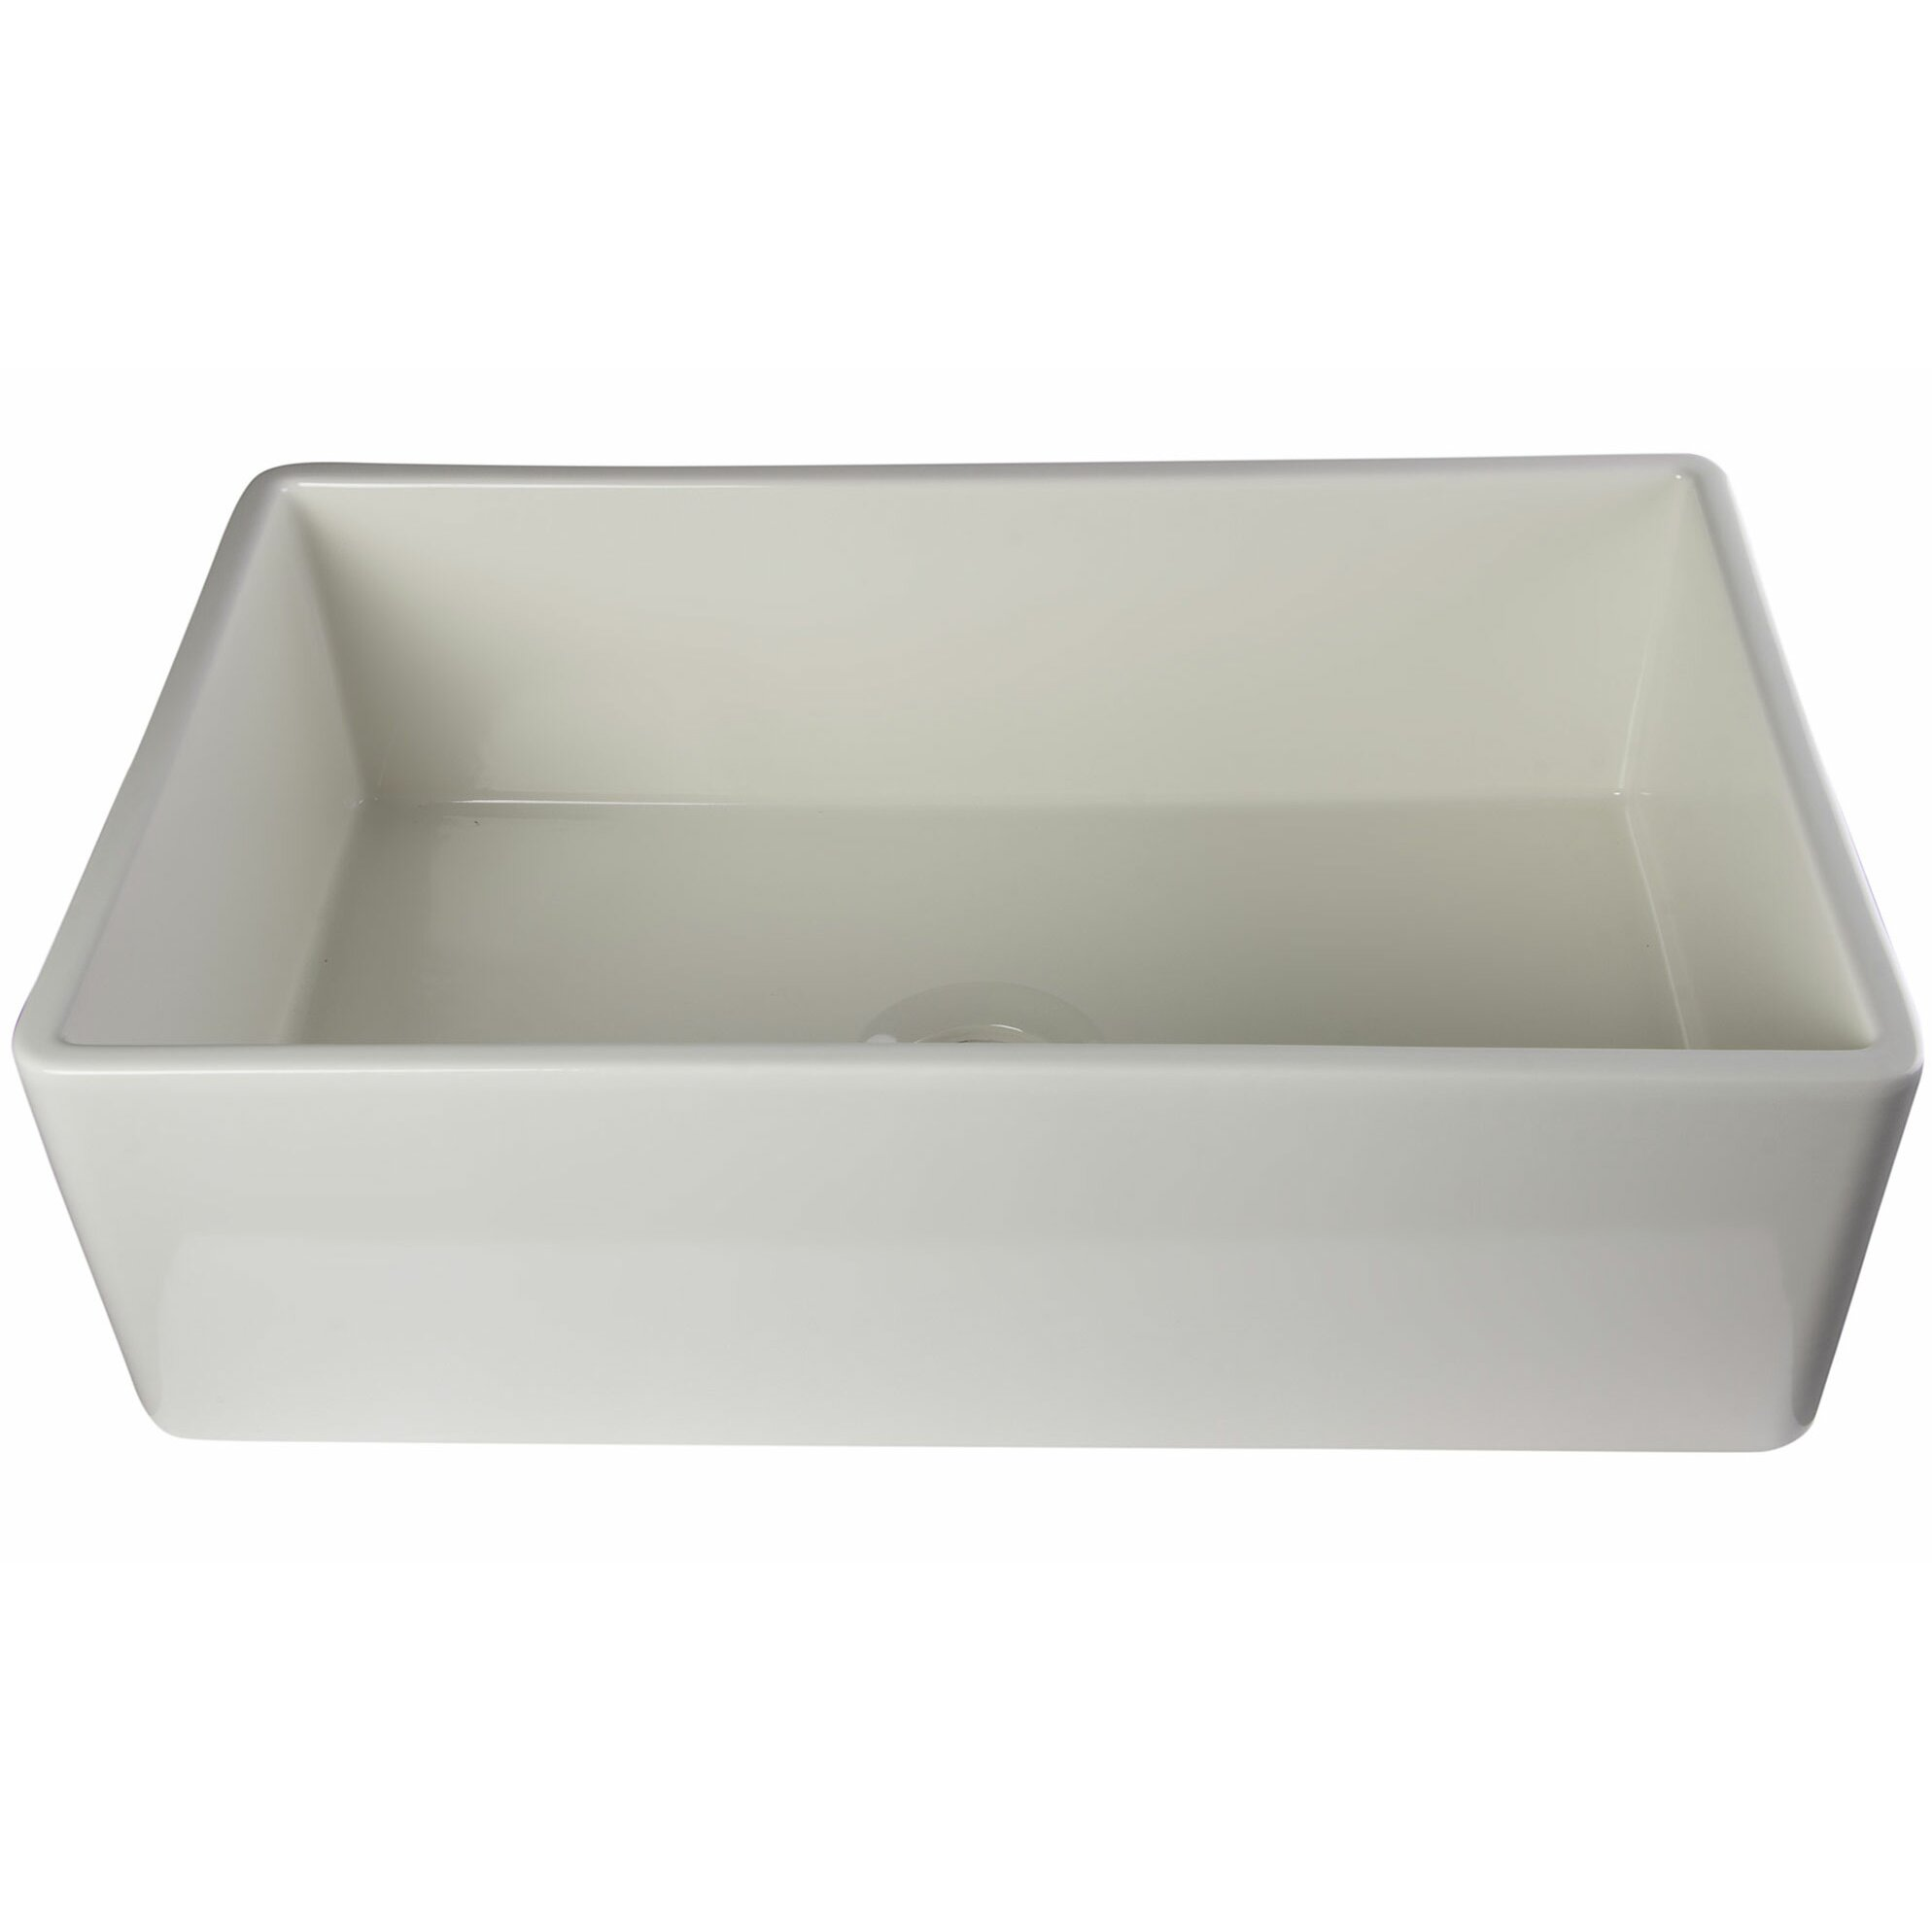 20 Farmhouse Sink : Alfi Brand 33